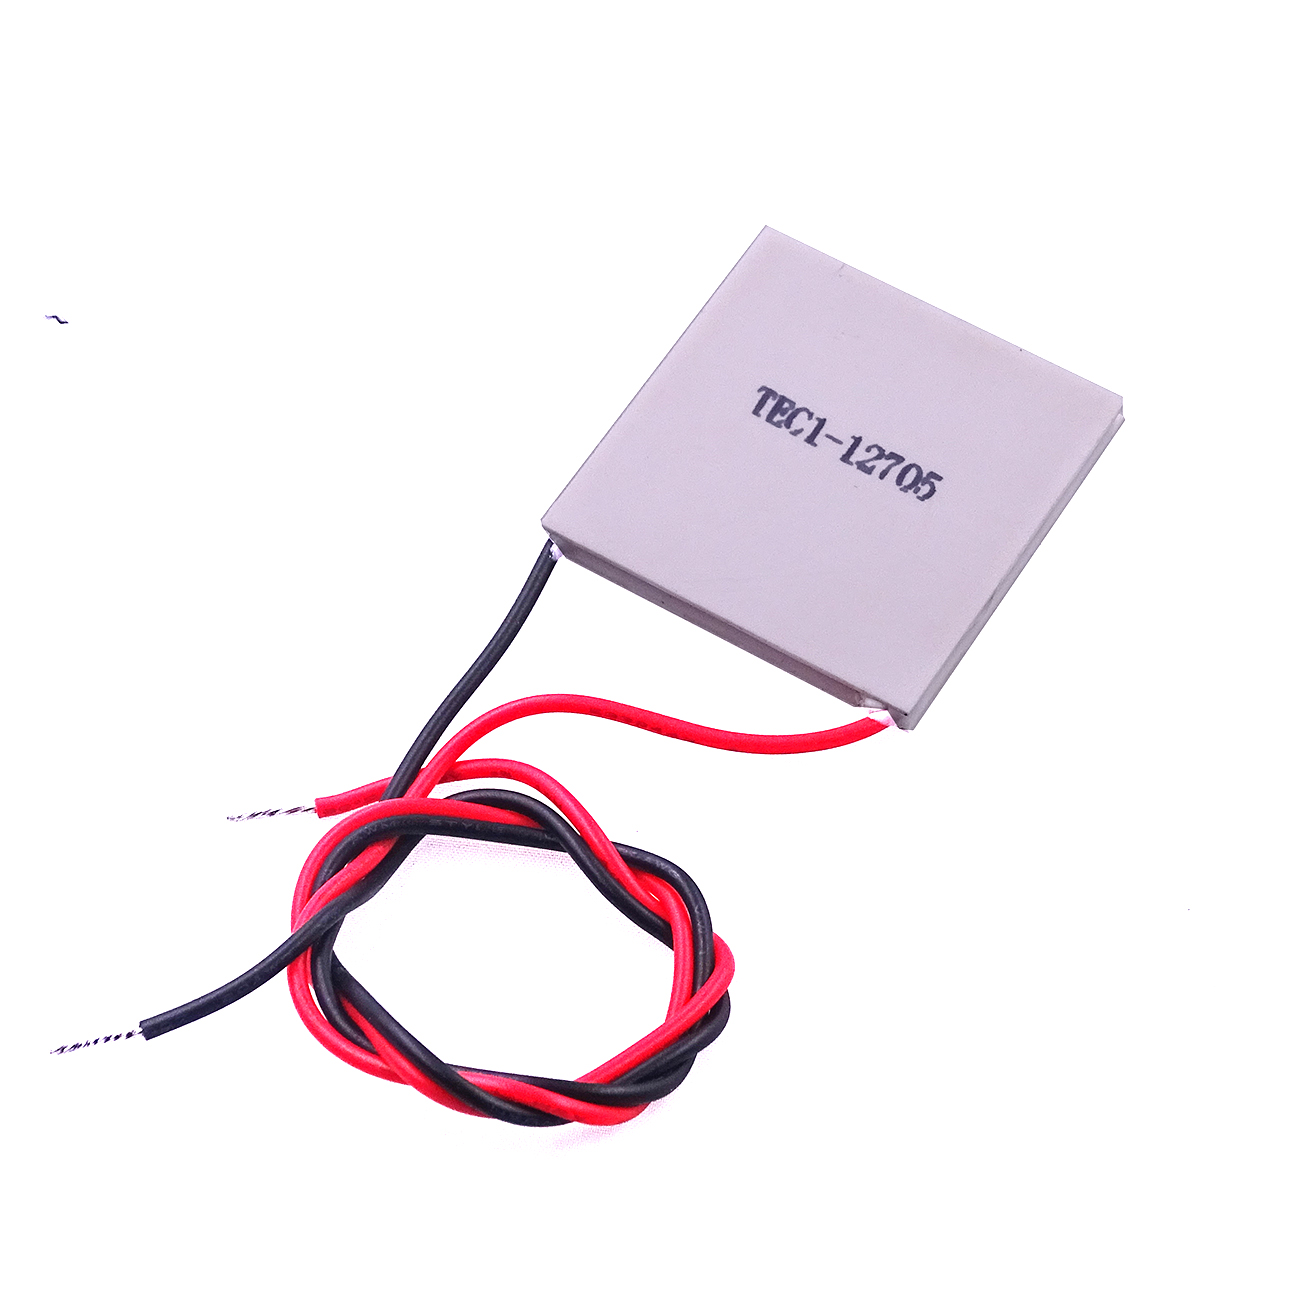 Image 2 - 60pcs 100% New the cheapest price TEC1 12705 TEC  12705 42.5W 15.4V 5A TEC Thermoelectric Cooler Peltier (TEC1 12705)(one box)-in Integrated Circuits from Electronic Components & Supplies